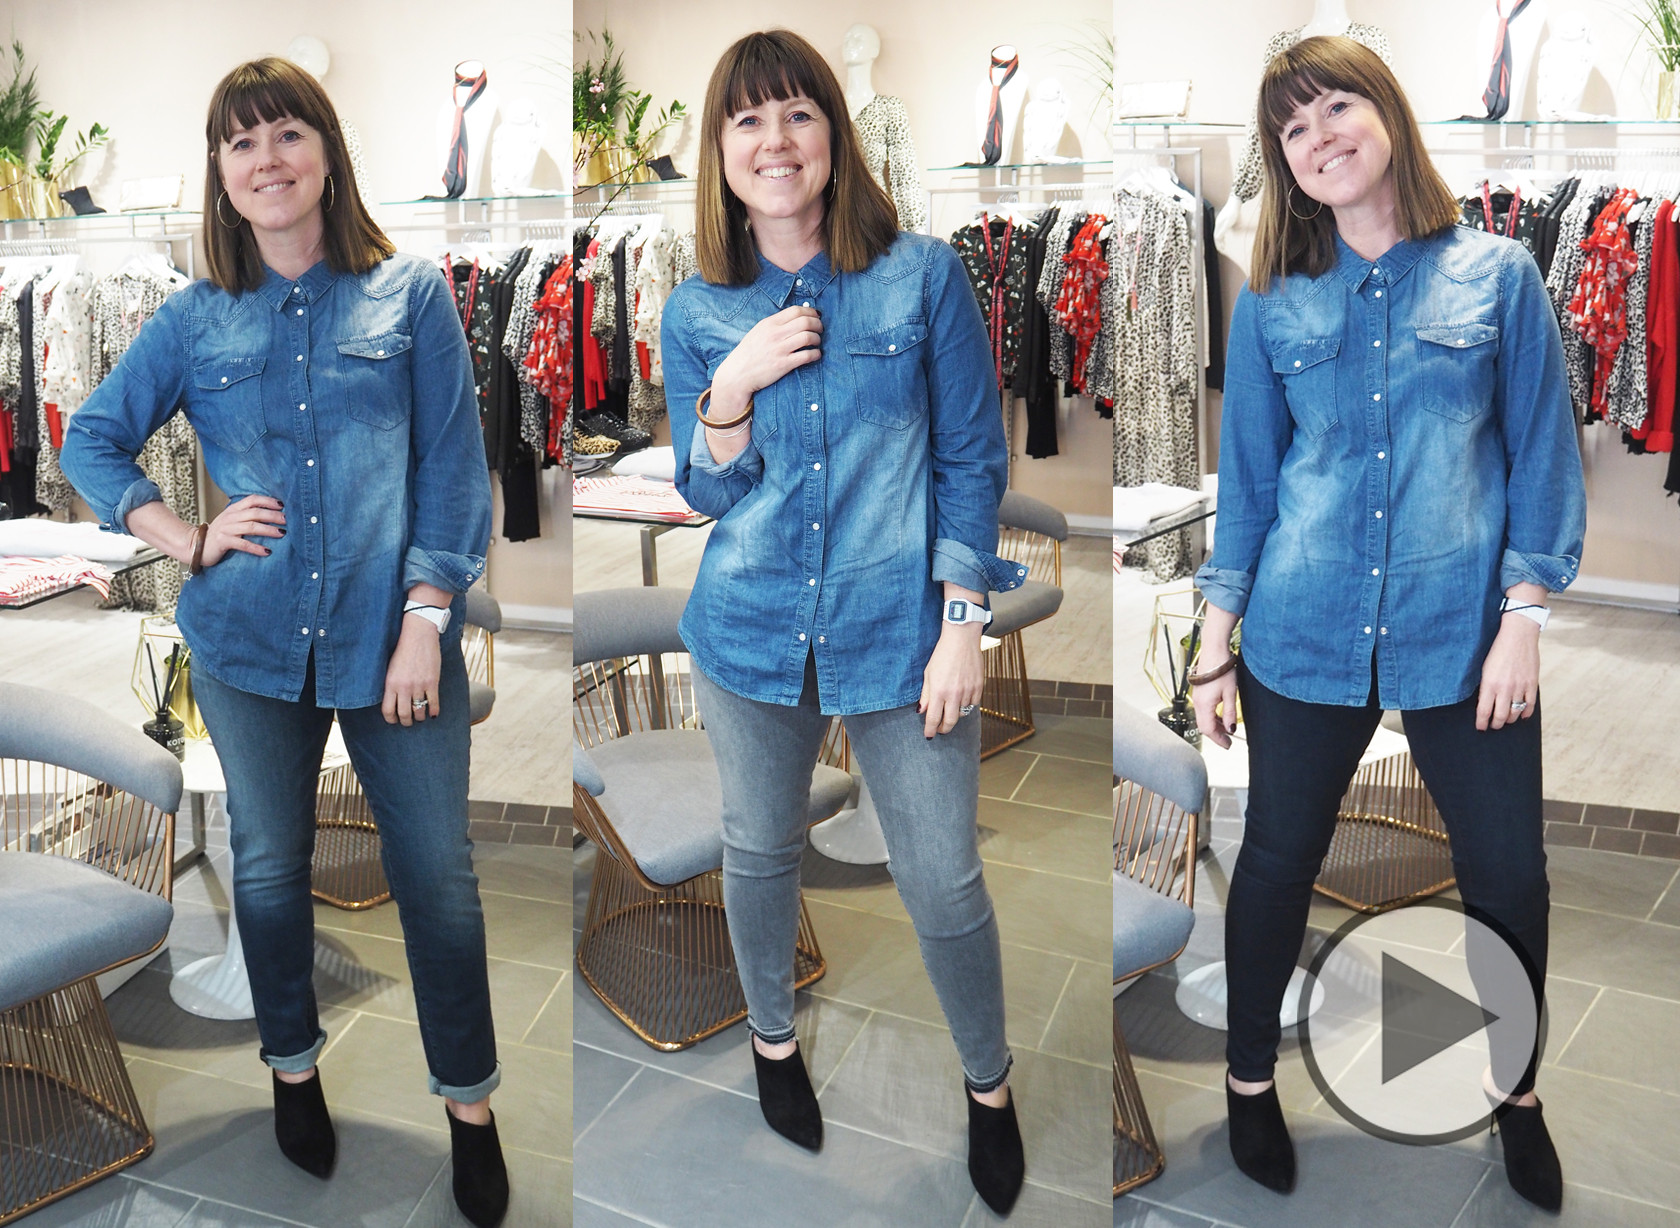 Caroline's Denim Challenge Video - Full Version - Paige Denim Jeans + J Brand Jeans